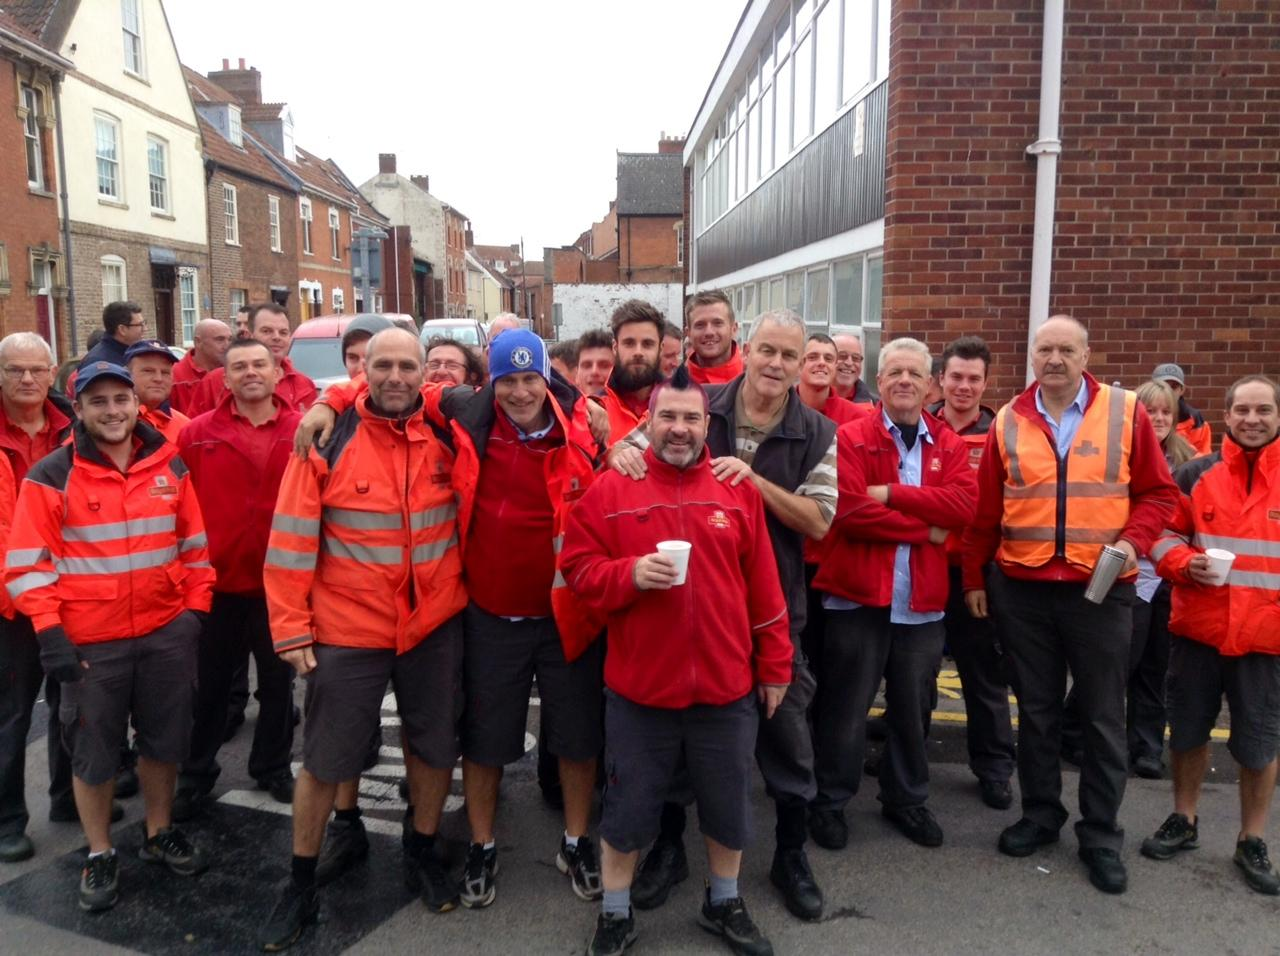 POSTAL workers outside the Royal Mail depot in Friarn Street, Bridgwater.